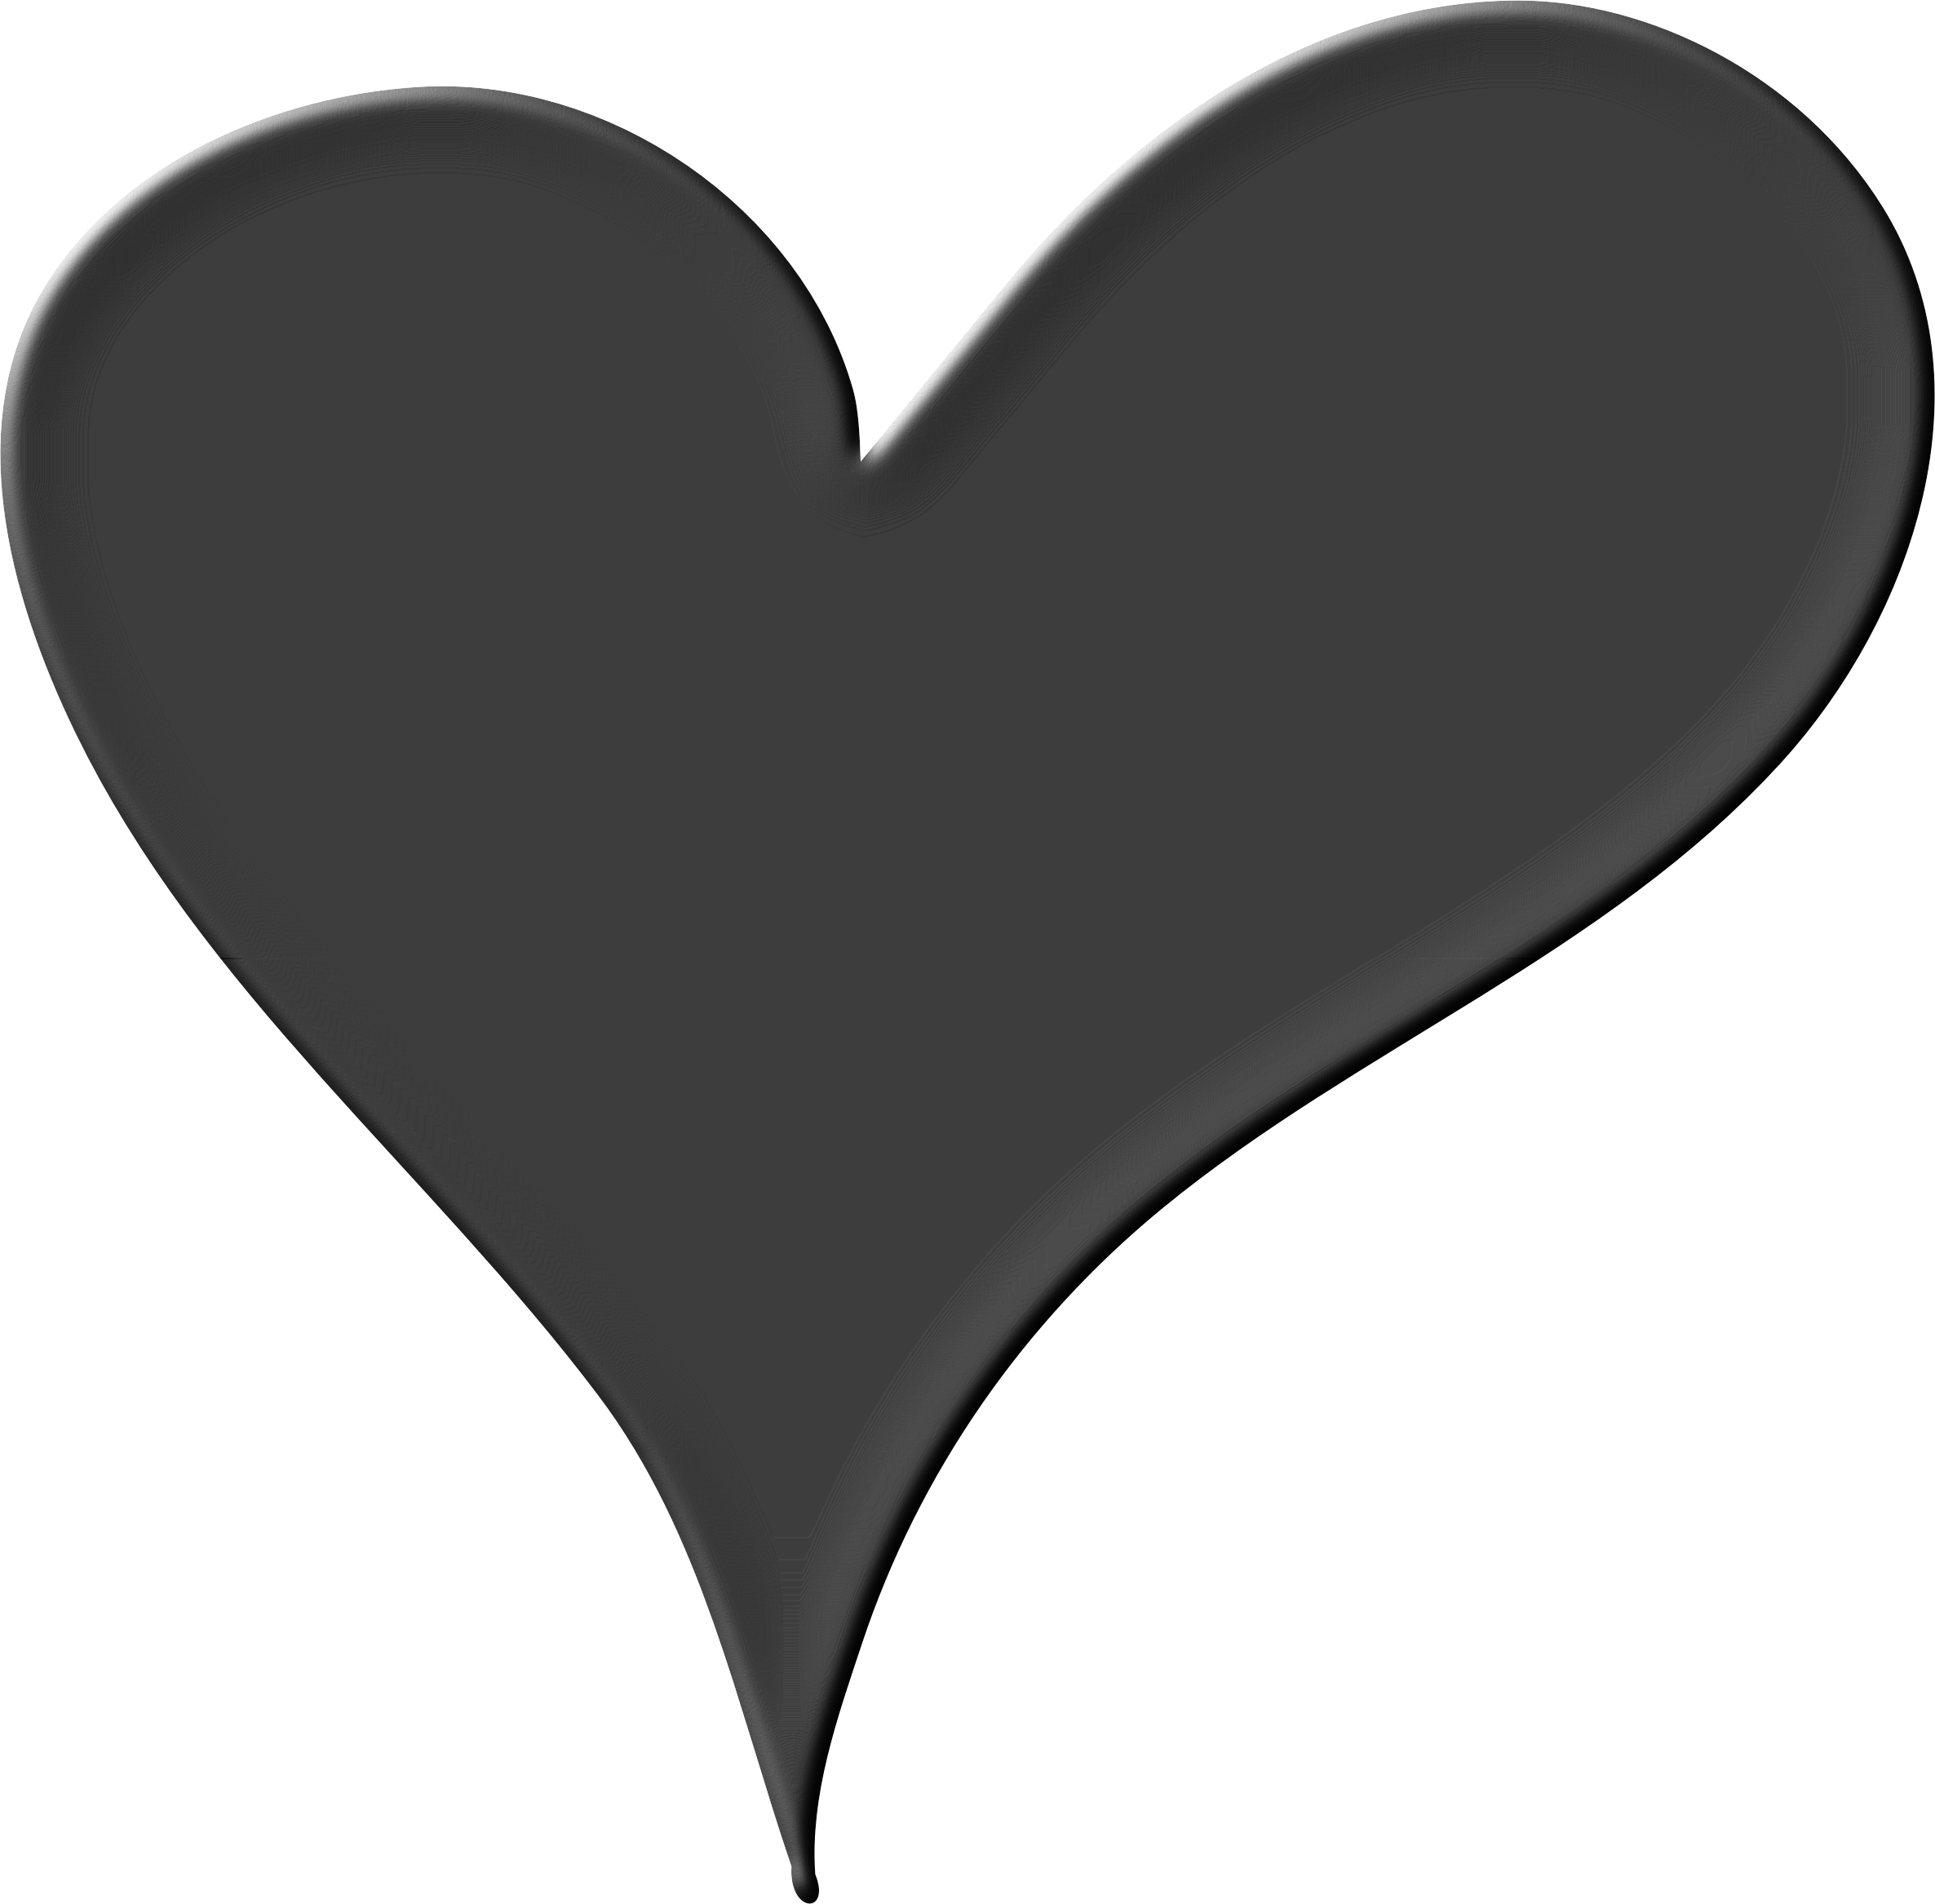 Heartbeat Png Transparent Black: Heart Png Black And White & Free Heart Black And White.png